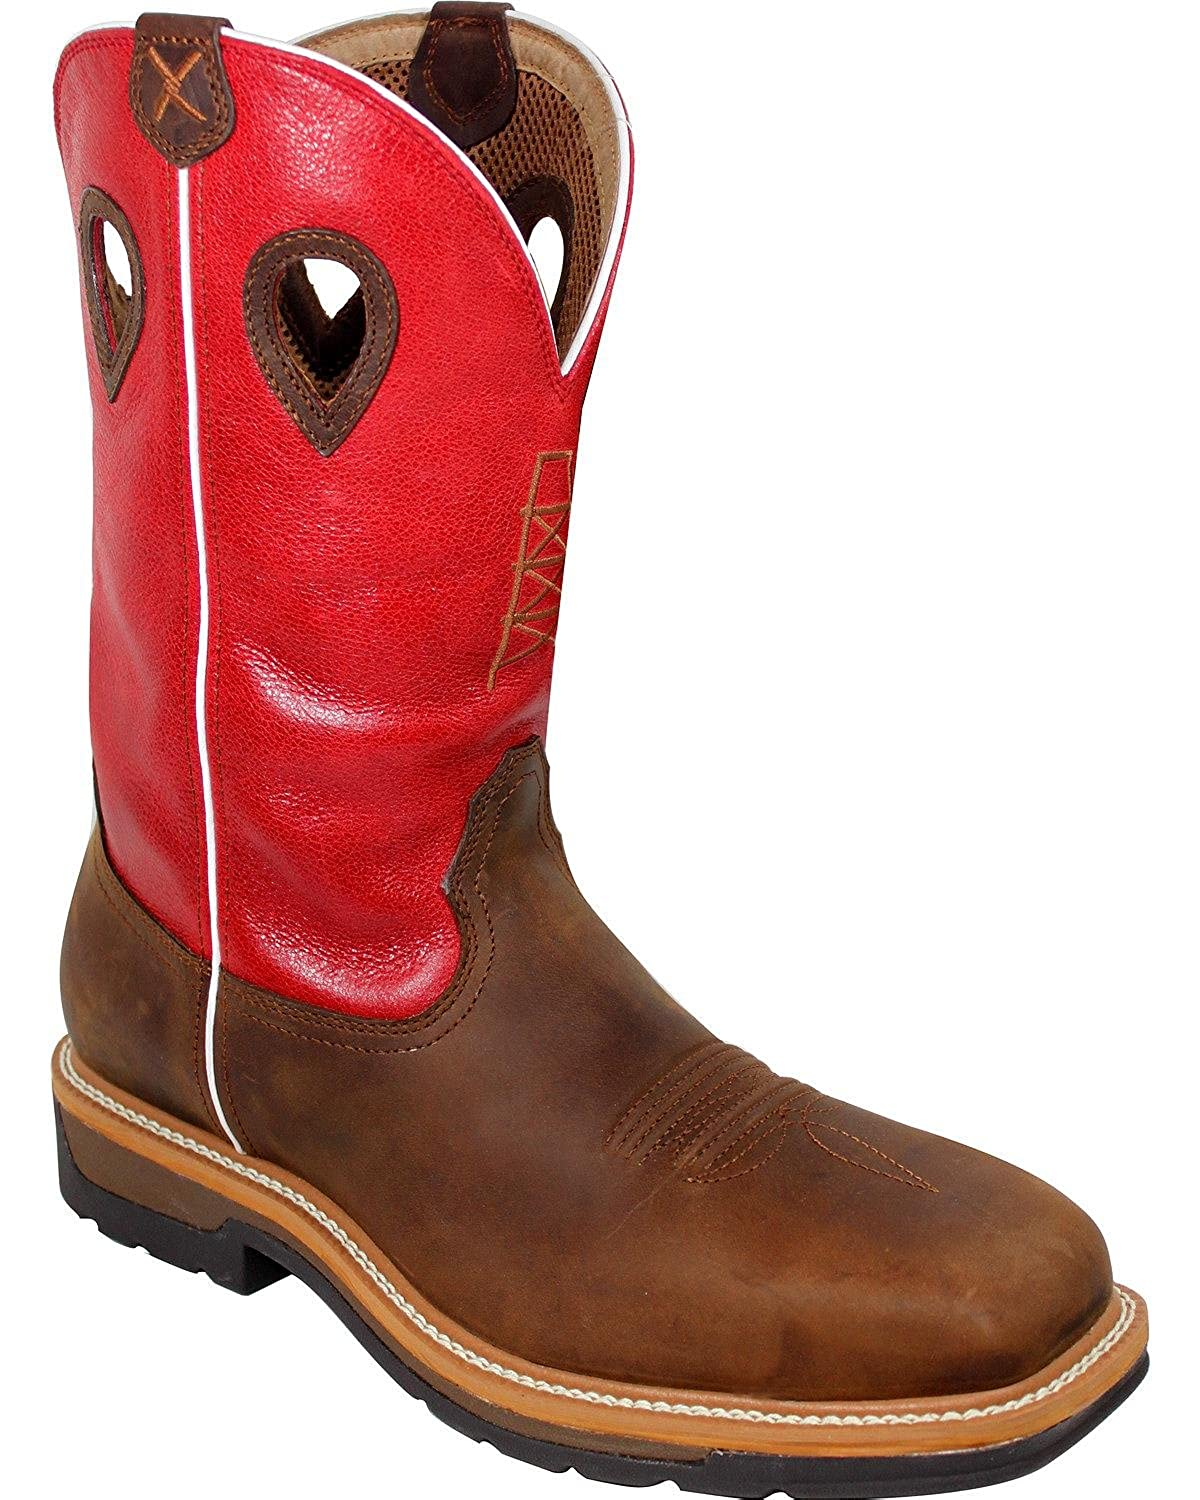 8ca73e94158 Twisted X Men's Waterproof Lite Cowboy Work Boot Composite Safety Toe